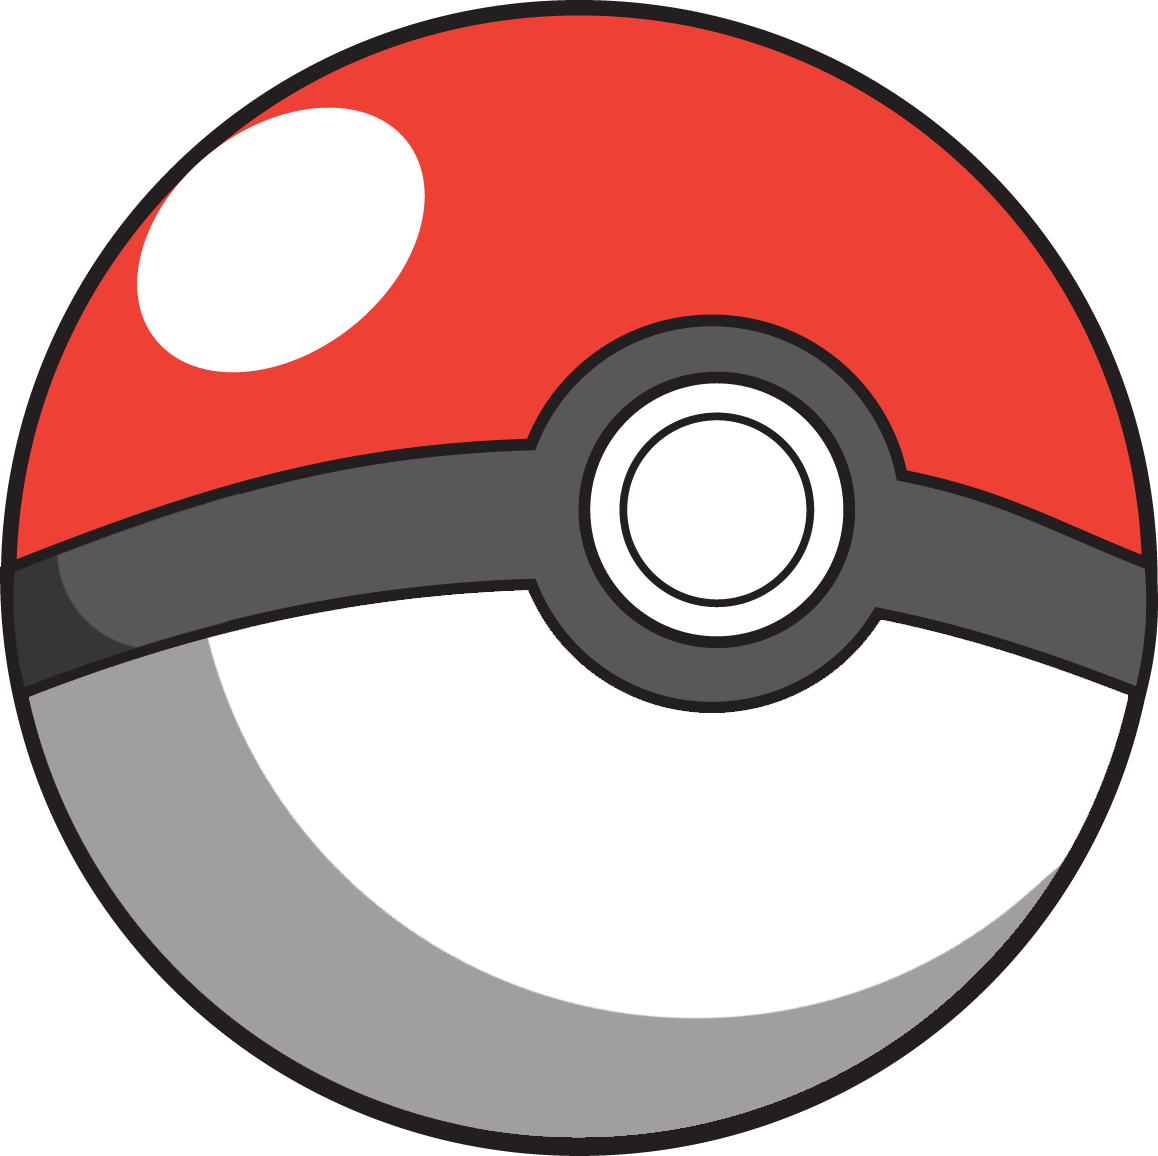 Pokeball clipart silhouette. Pokebola go png pokemon